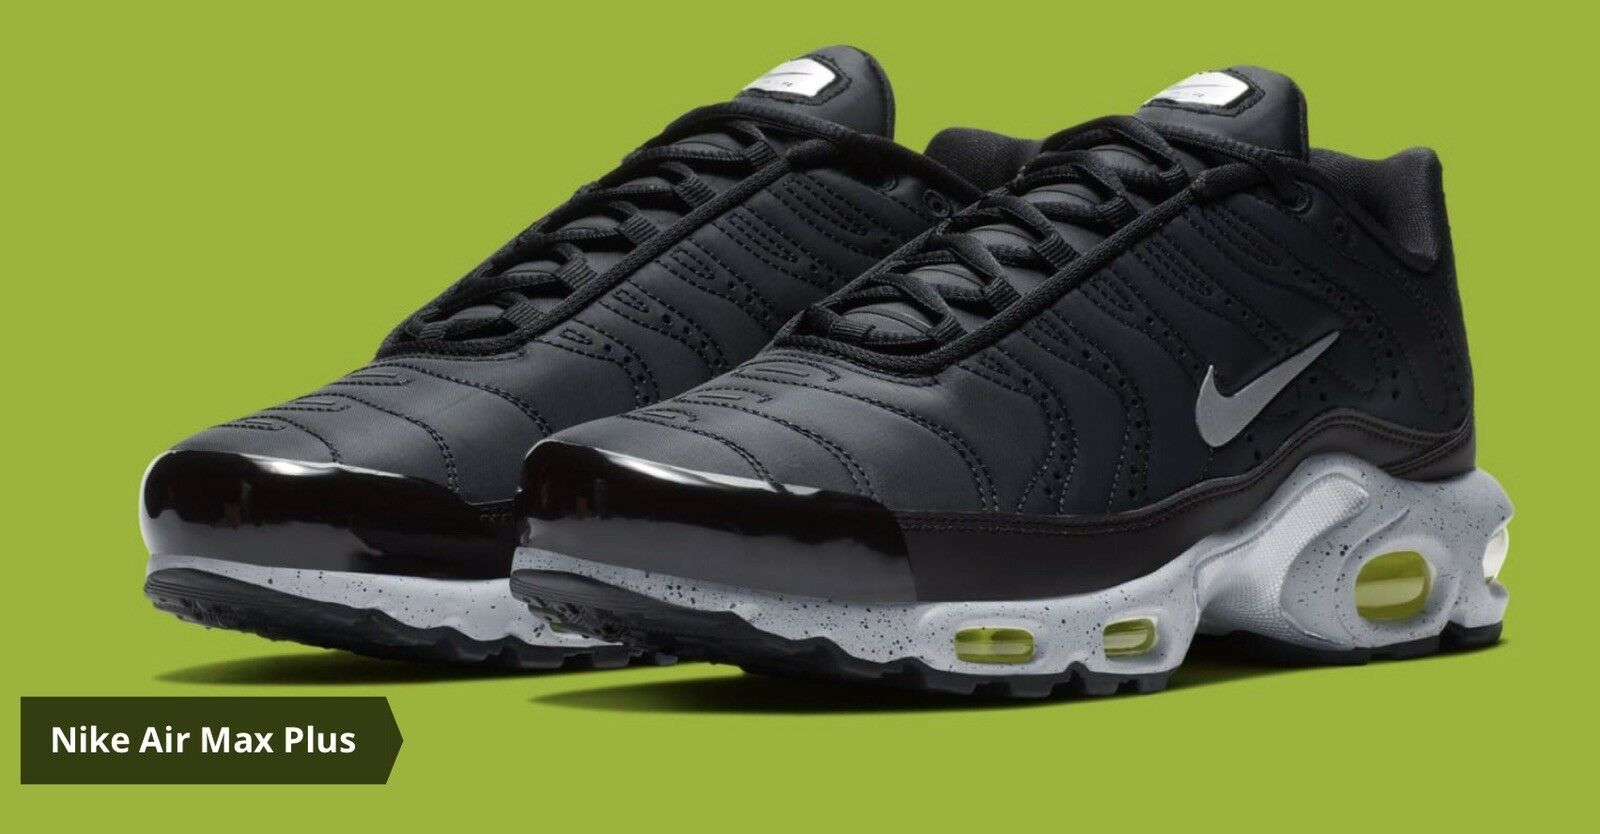 DS MENS NIKE AIR MAX PLUS PRM BLACK RUNNING SHOES 815994 003 SZ 12 FREE SHIP